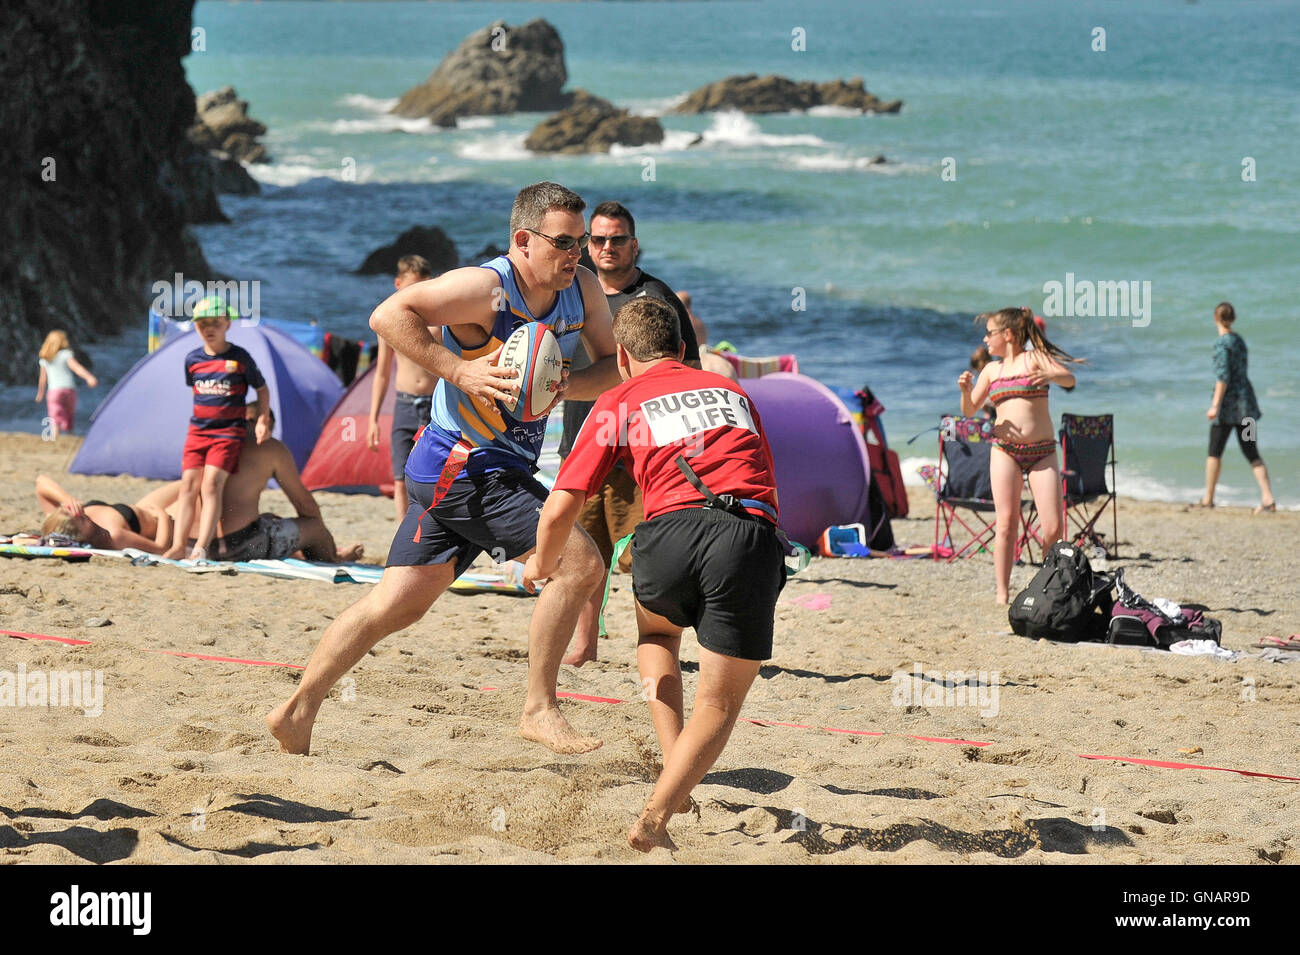 The annual Lusty Glaze Beach Tag Rugby tournament in Newquay, Cornwall. - Stock Image